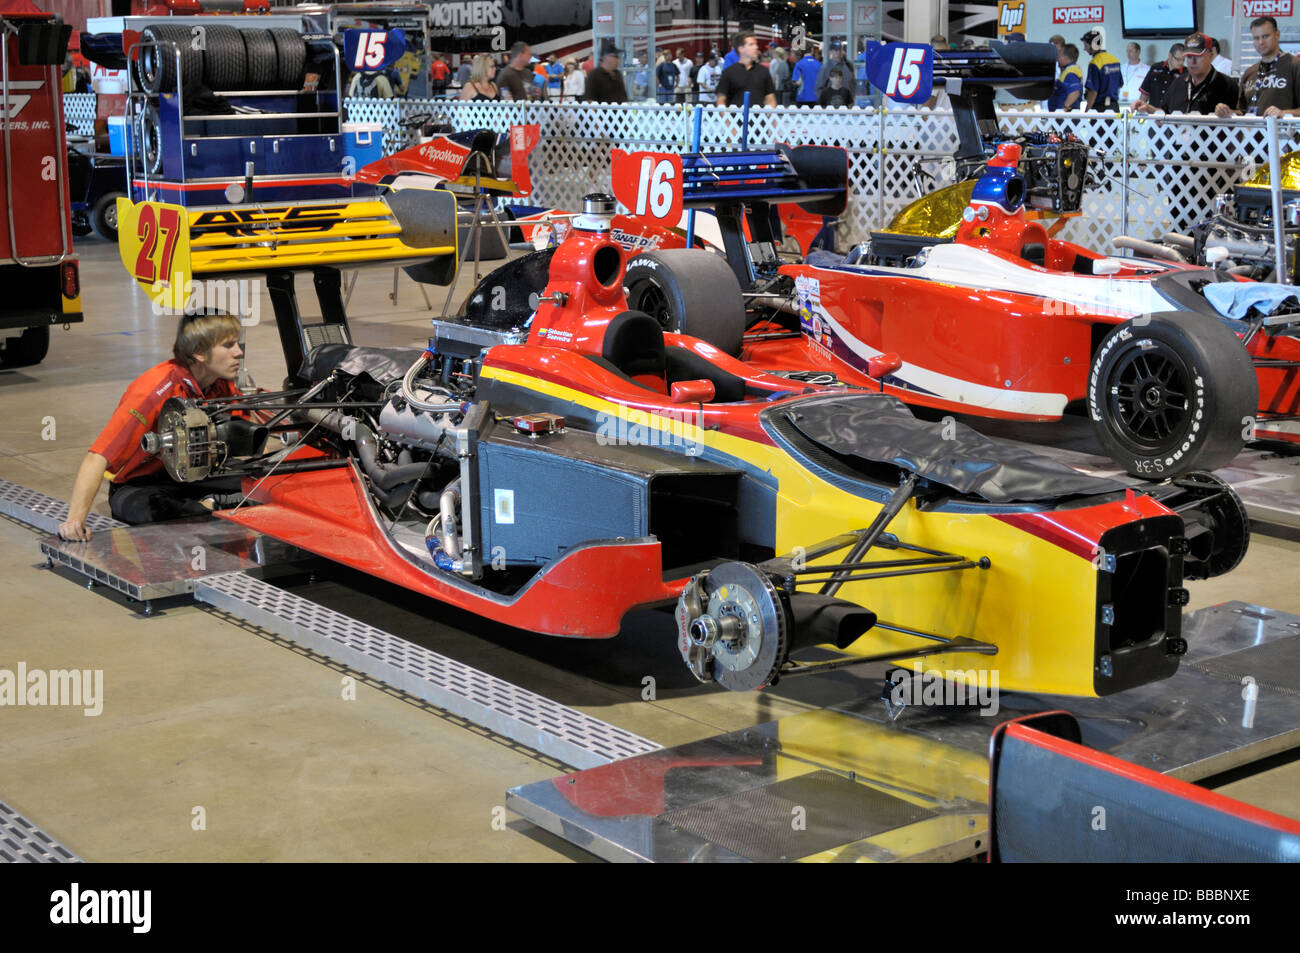 Colorful Indy race car partially disassembled - Stock Image